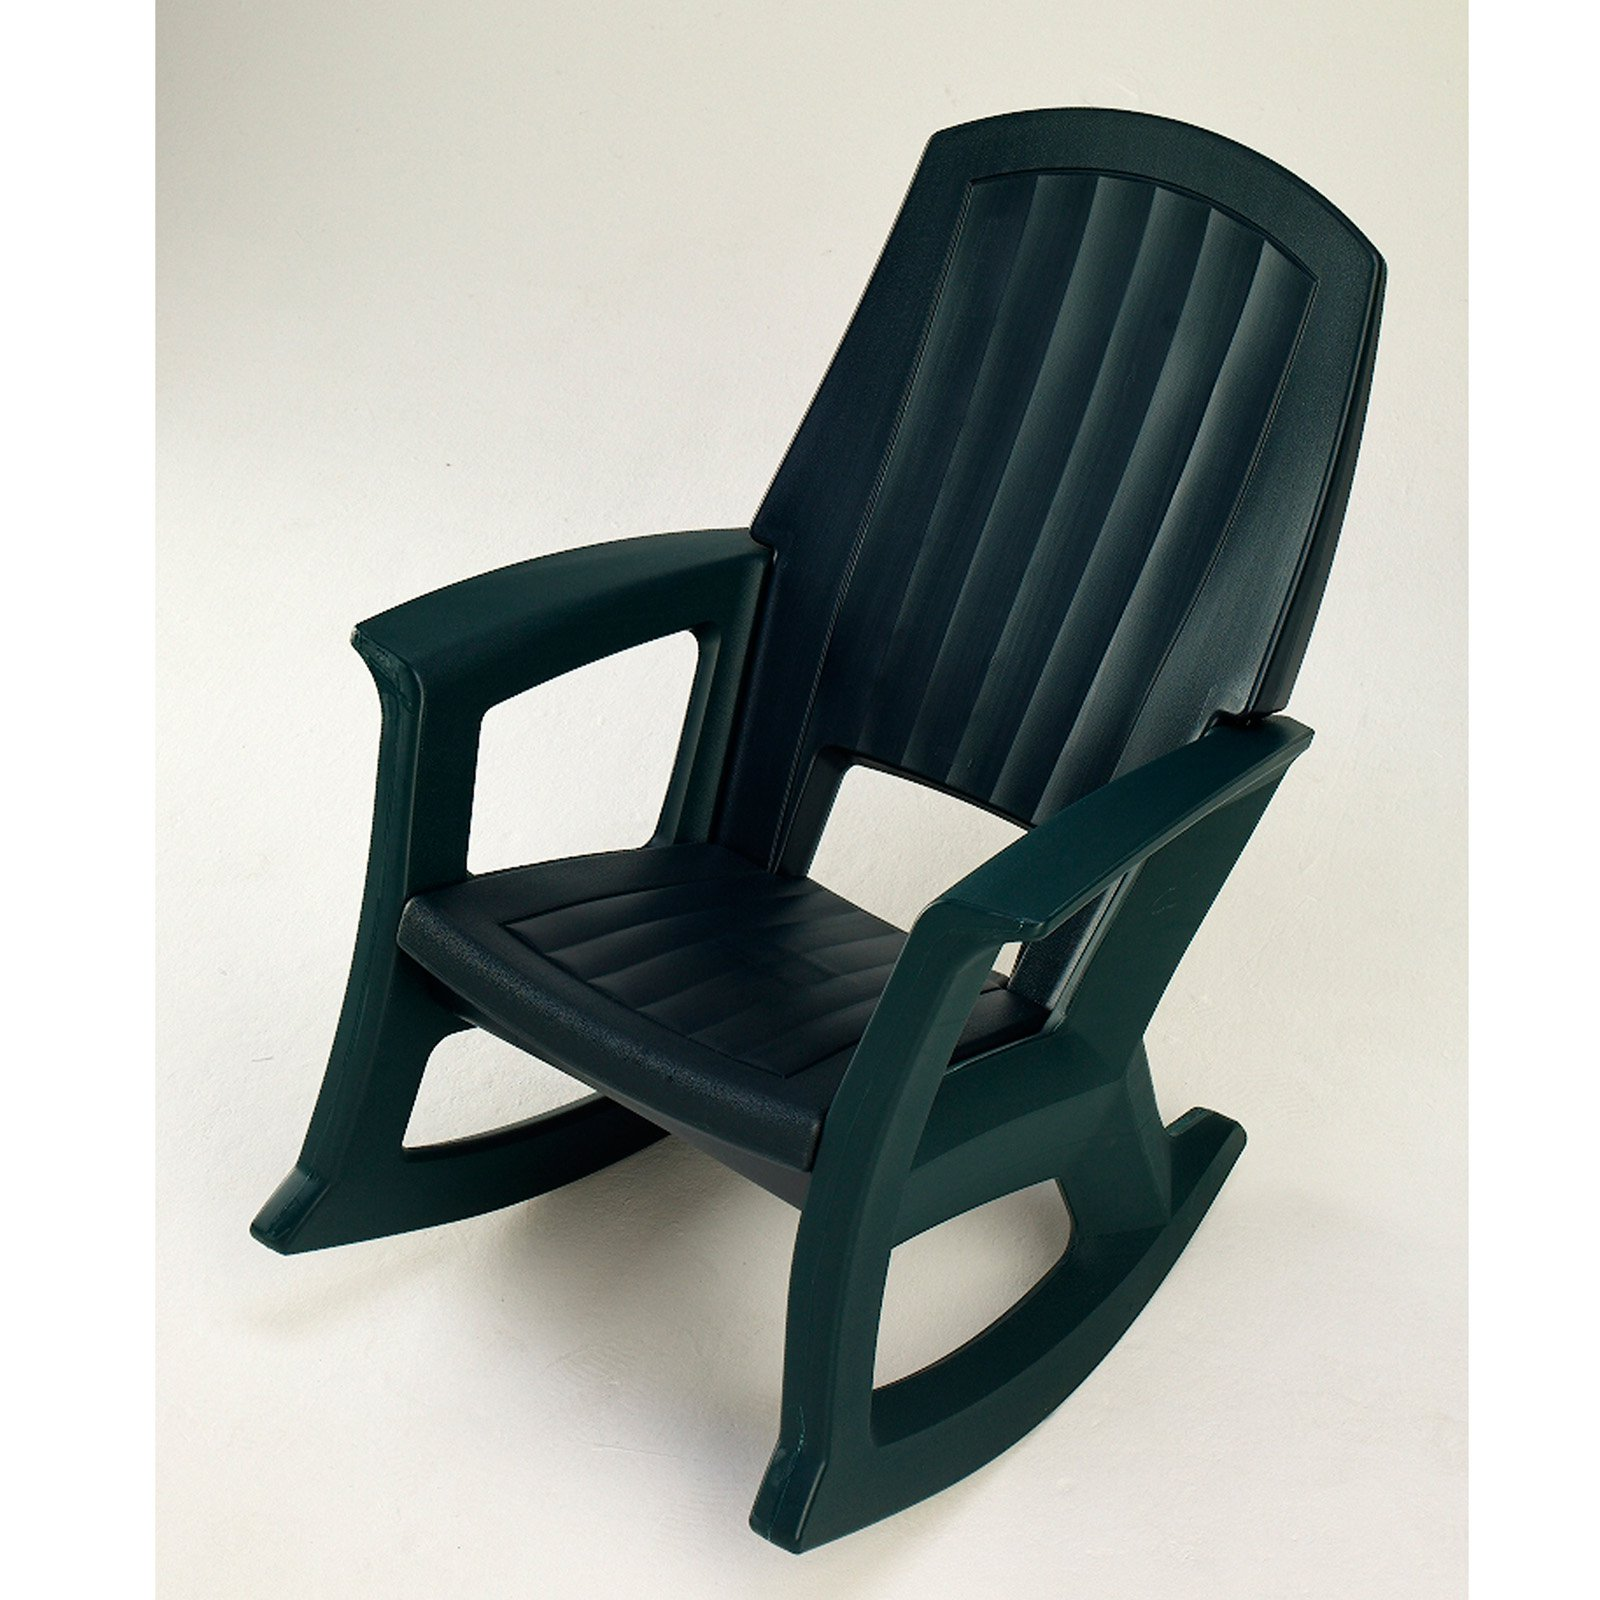 Semco Recycled Plastic Rocking Chair Walmart